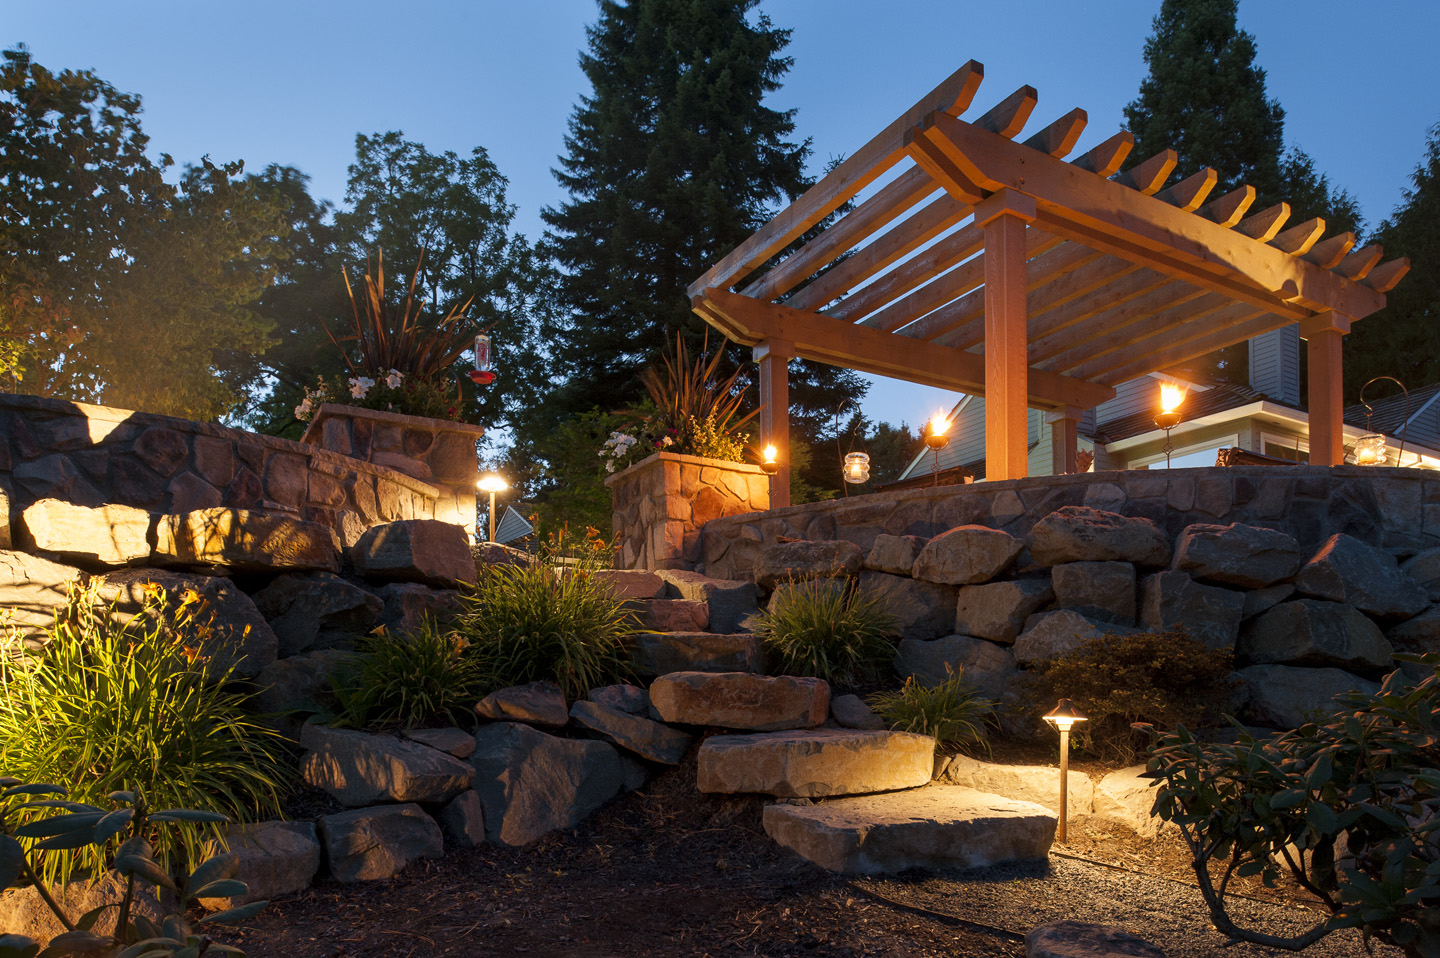 Pergola awning with boulder staircase